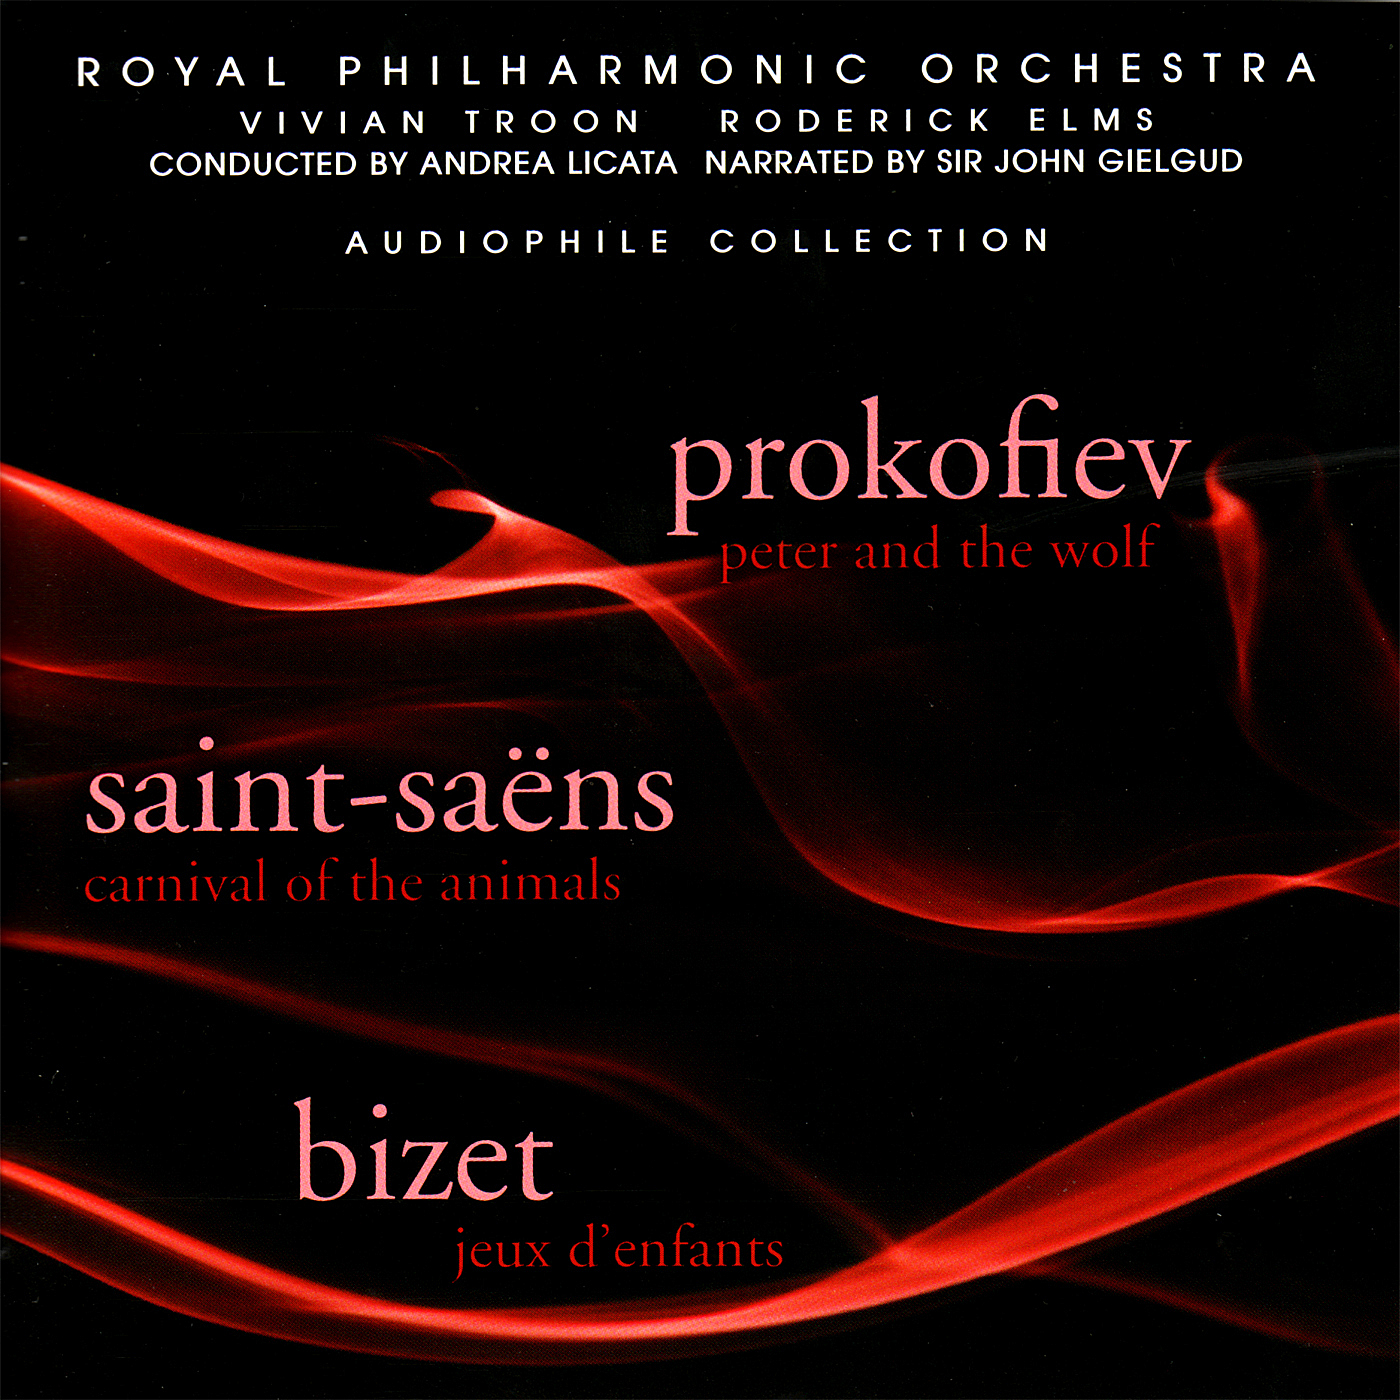 Listen Free To Royal Philharmonic Orchestra